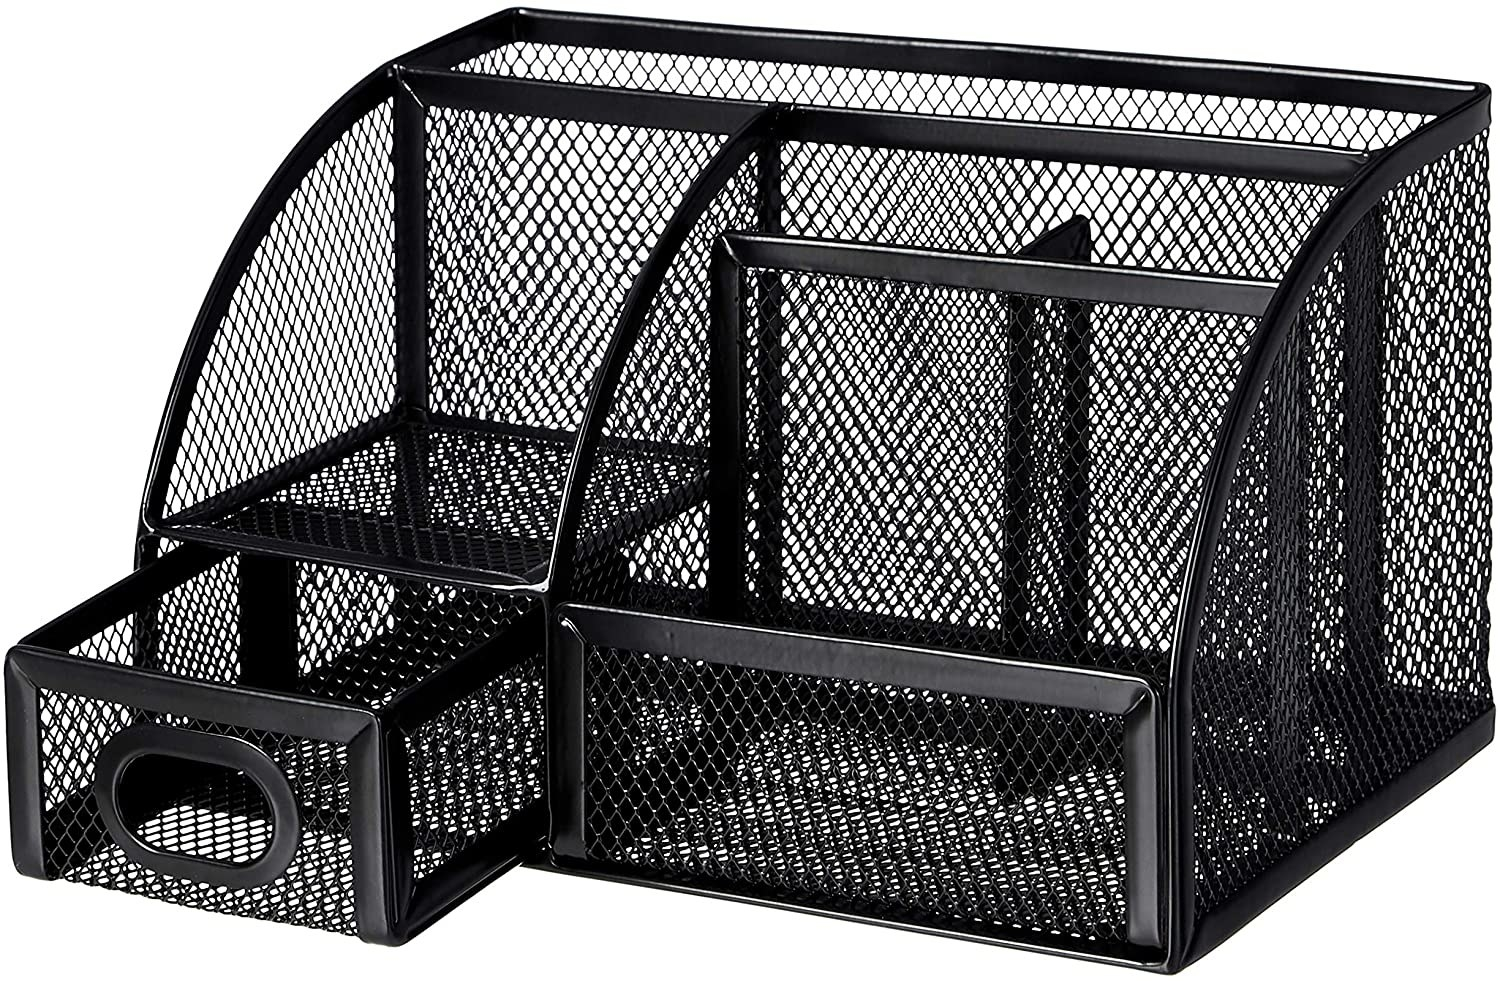 A mesh organizer with various slots and one drawer